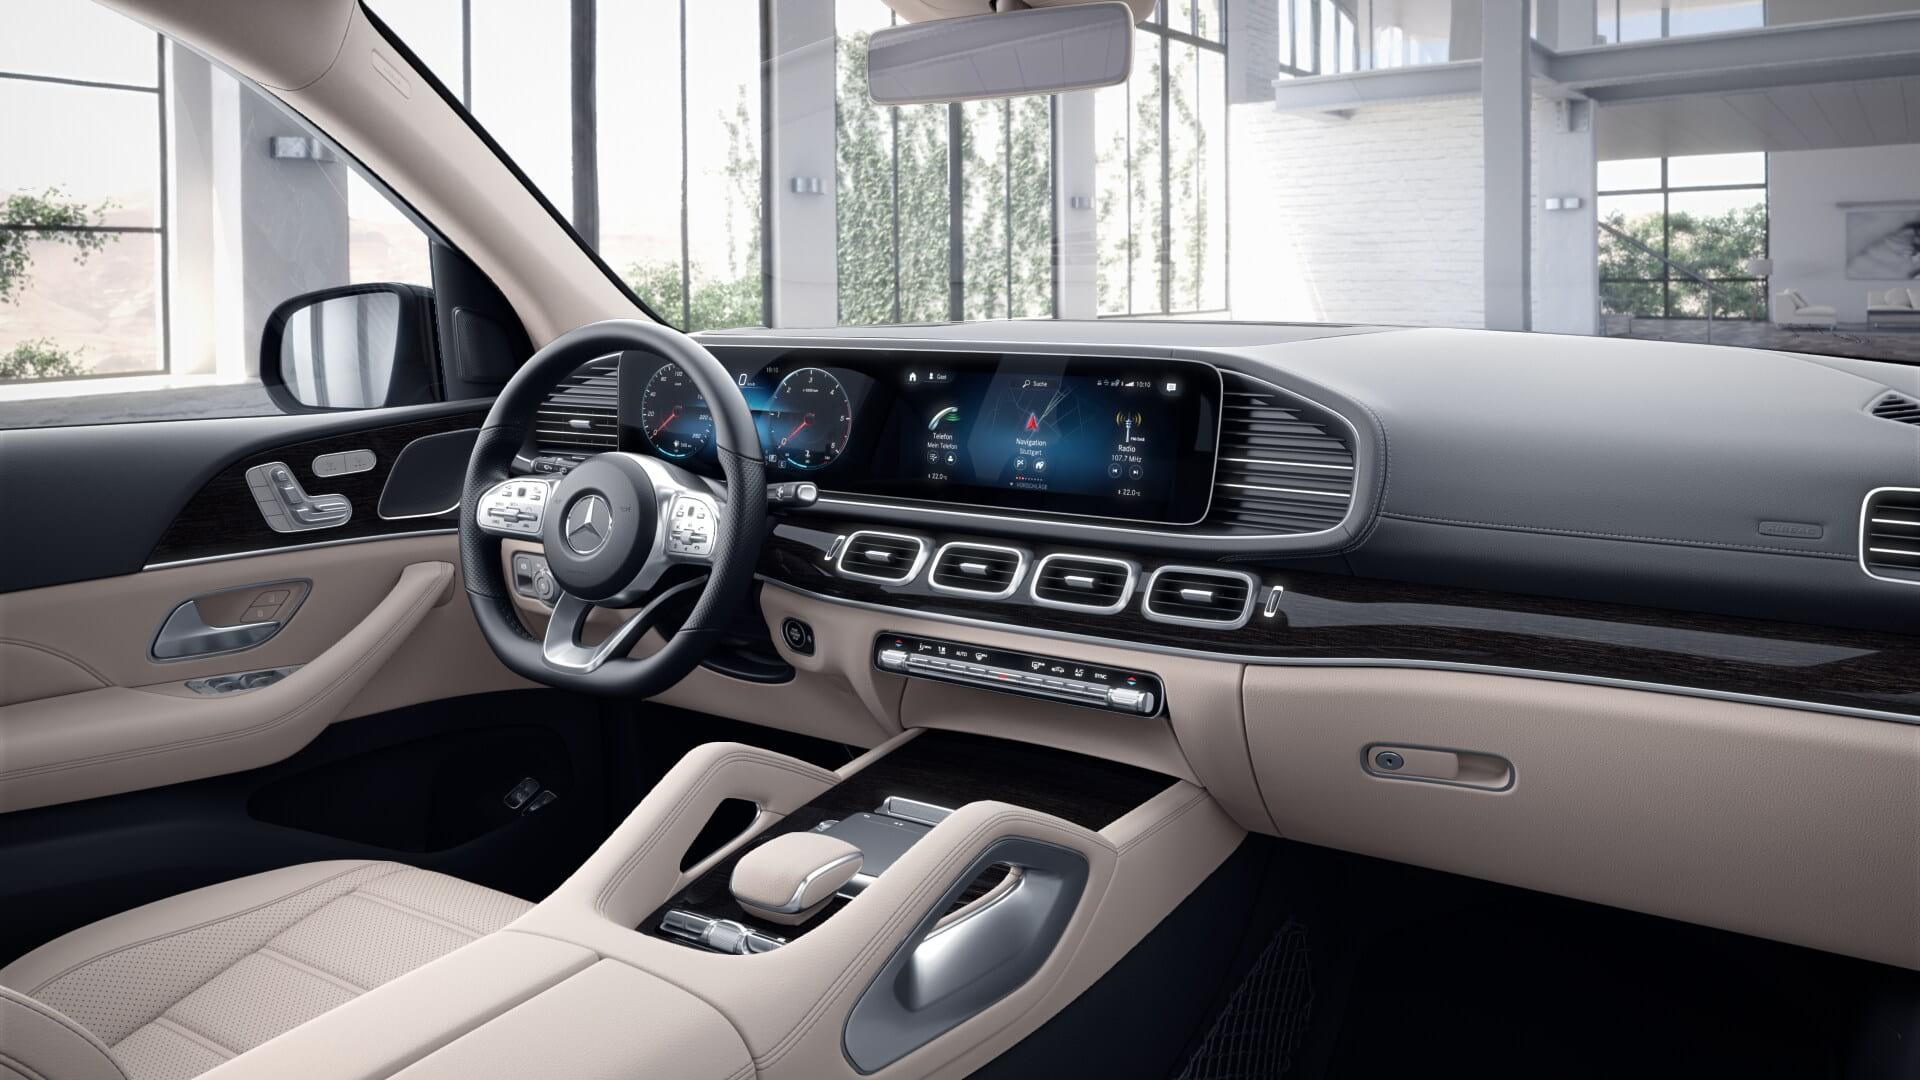 Новый автомобиль Mercedes-Benz GLS 350 d кокпит